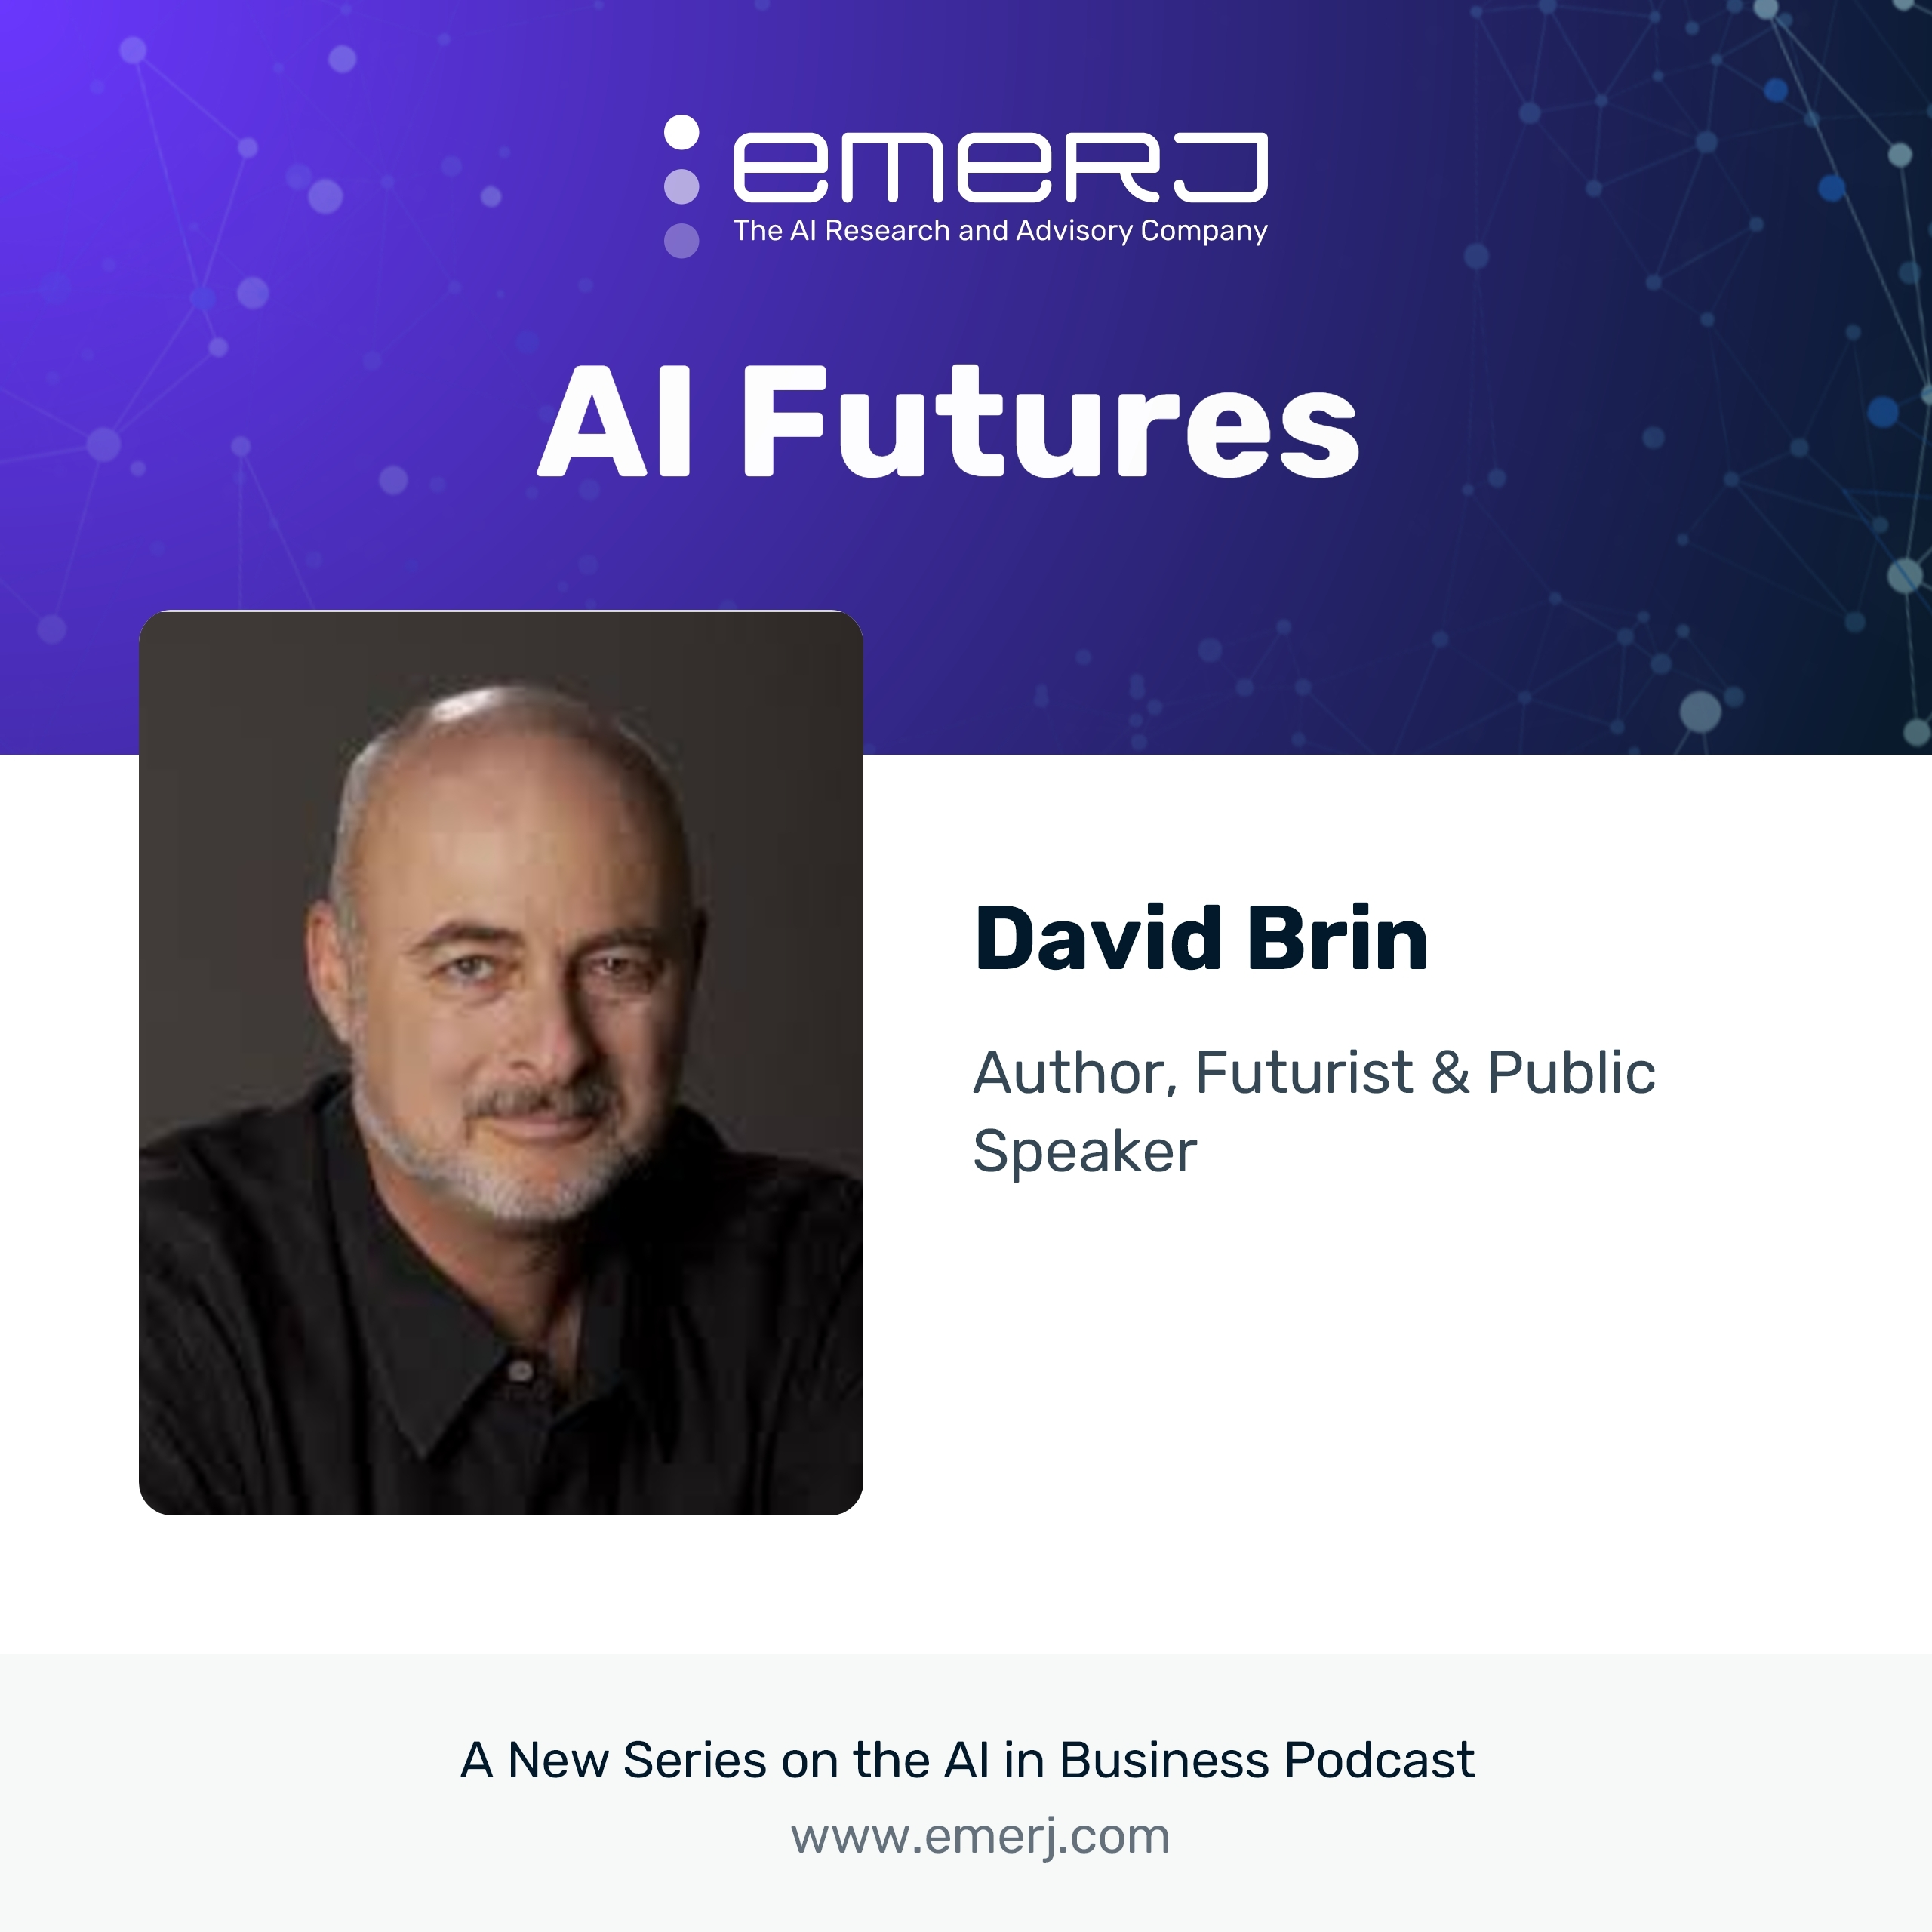 [AI Futures - S2E7] Developing AGI and Avoiding Global Conflict - with Science Fiction Legend David Brin